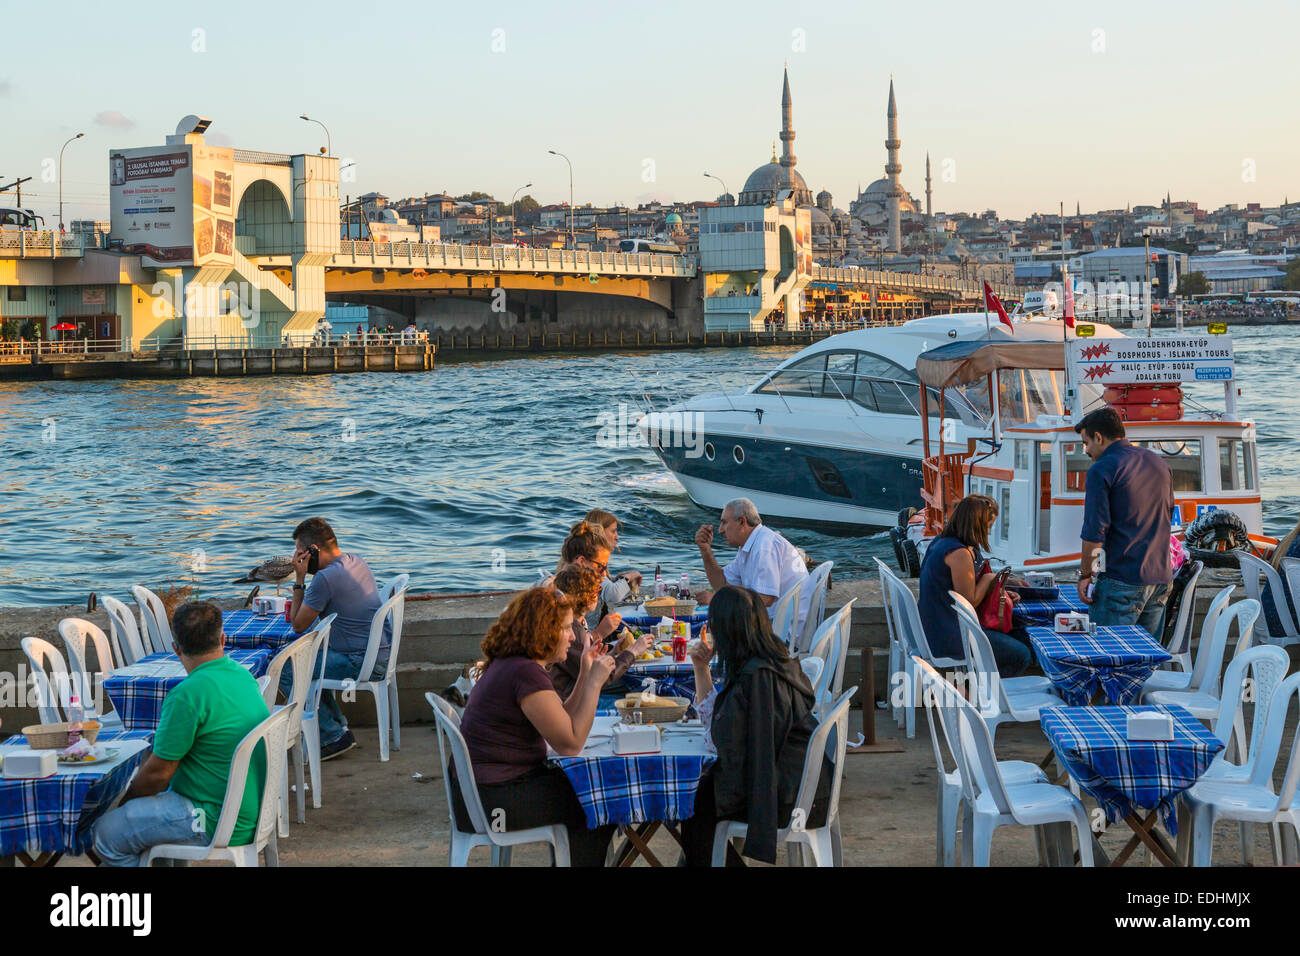 A small seafood restaurant overlooking the Golden Horn in Istanbul, Turkey, Eurasia. - Stock Image